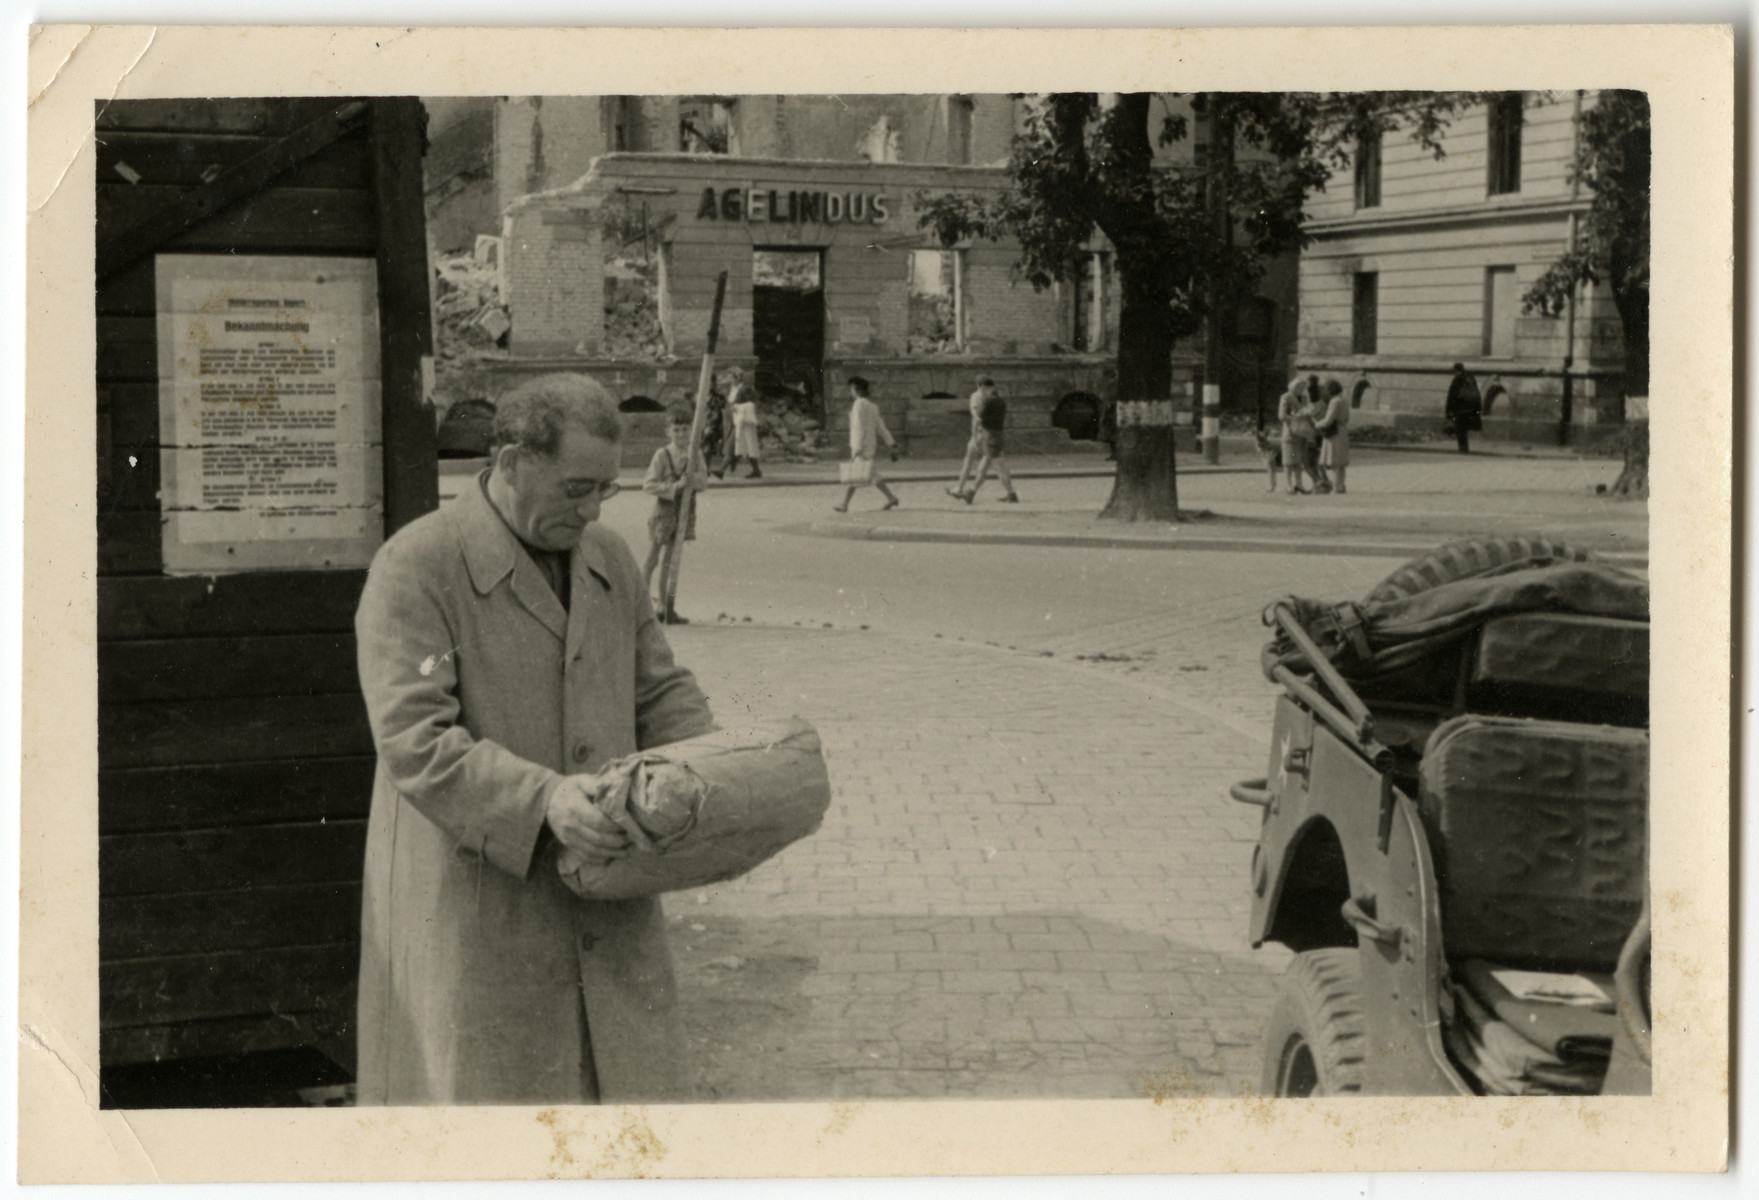 Dr. Hirsch (Tzvi) Elkes stands on a street corner in Germany and examines a package.